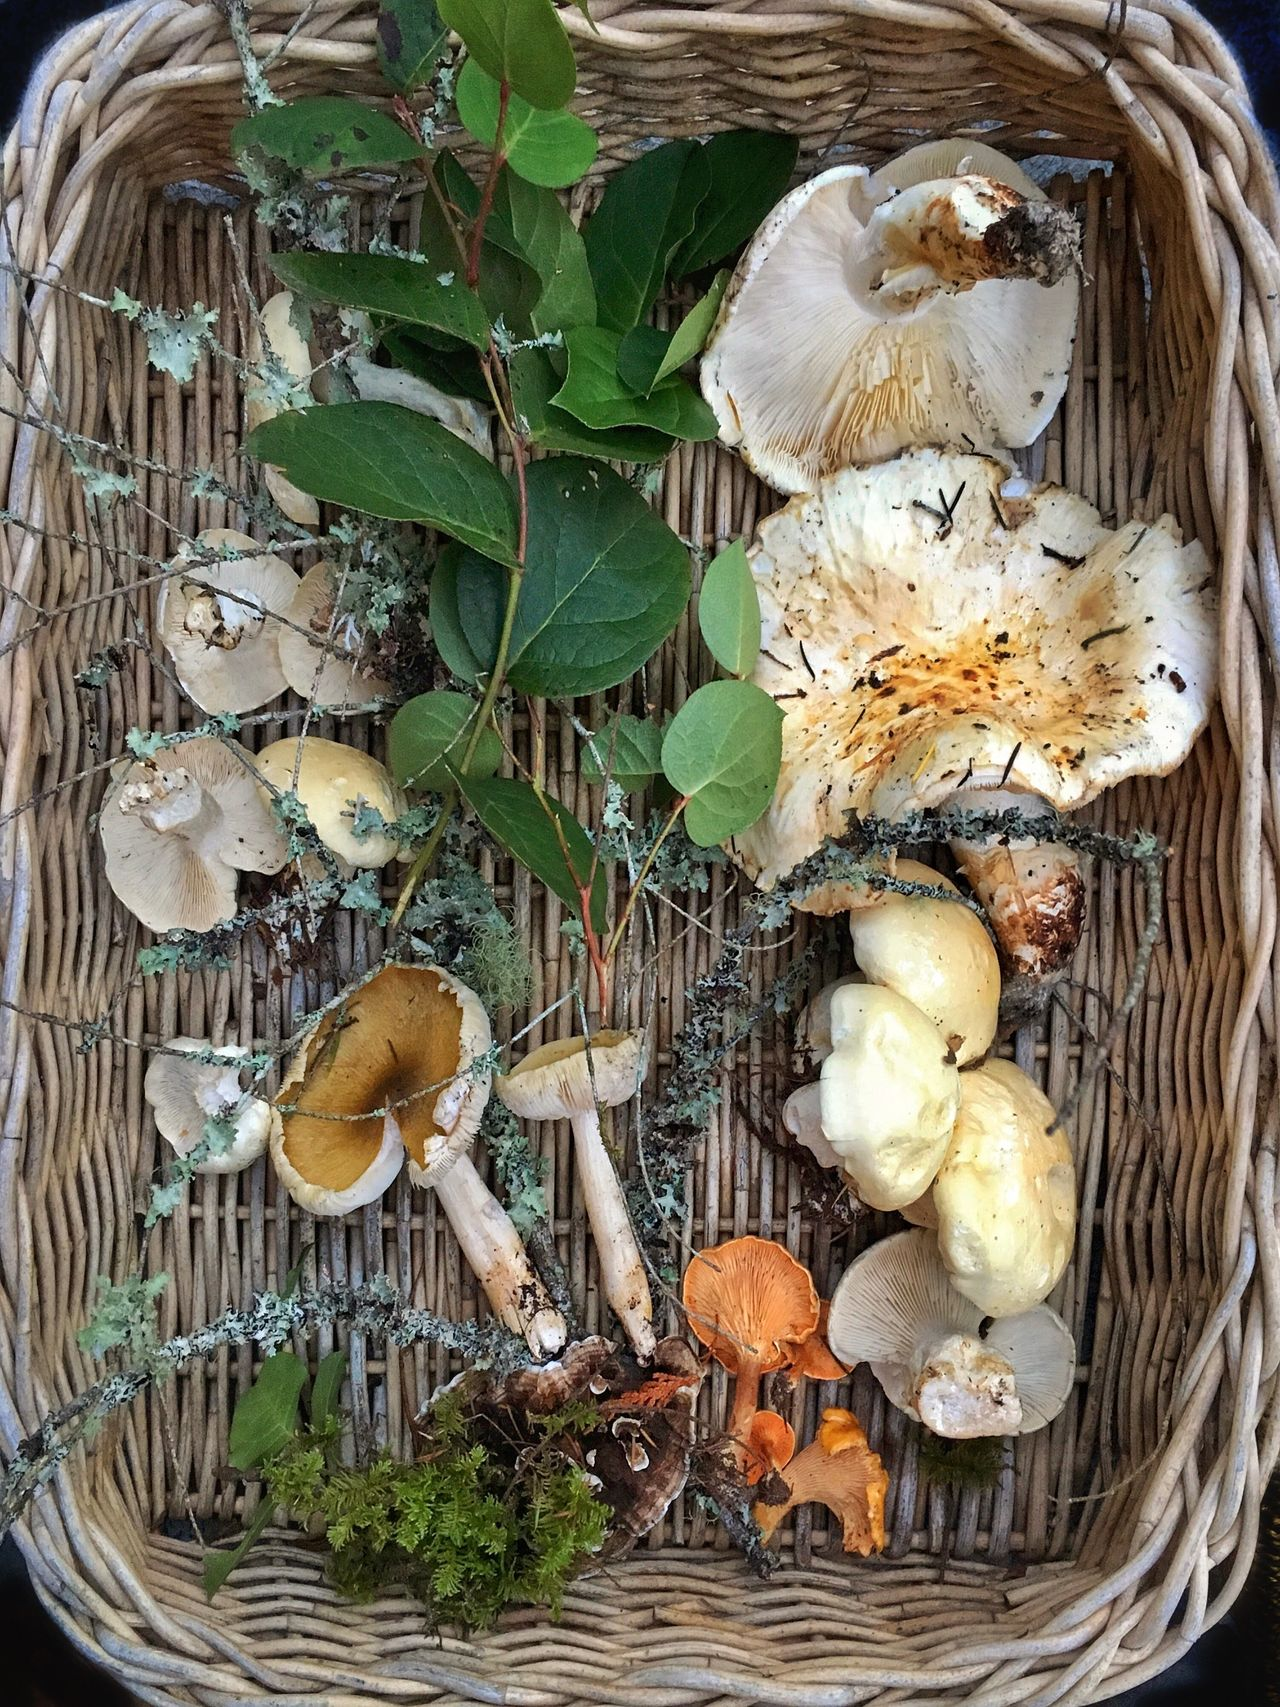 Natures gifts Outdoors Healthy Eating Close-up No People Beauty In Nature Freshness Forest Photography Mushrooms Plant Still Life Fall Beauty Matsutake